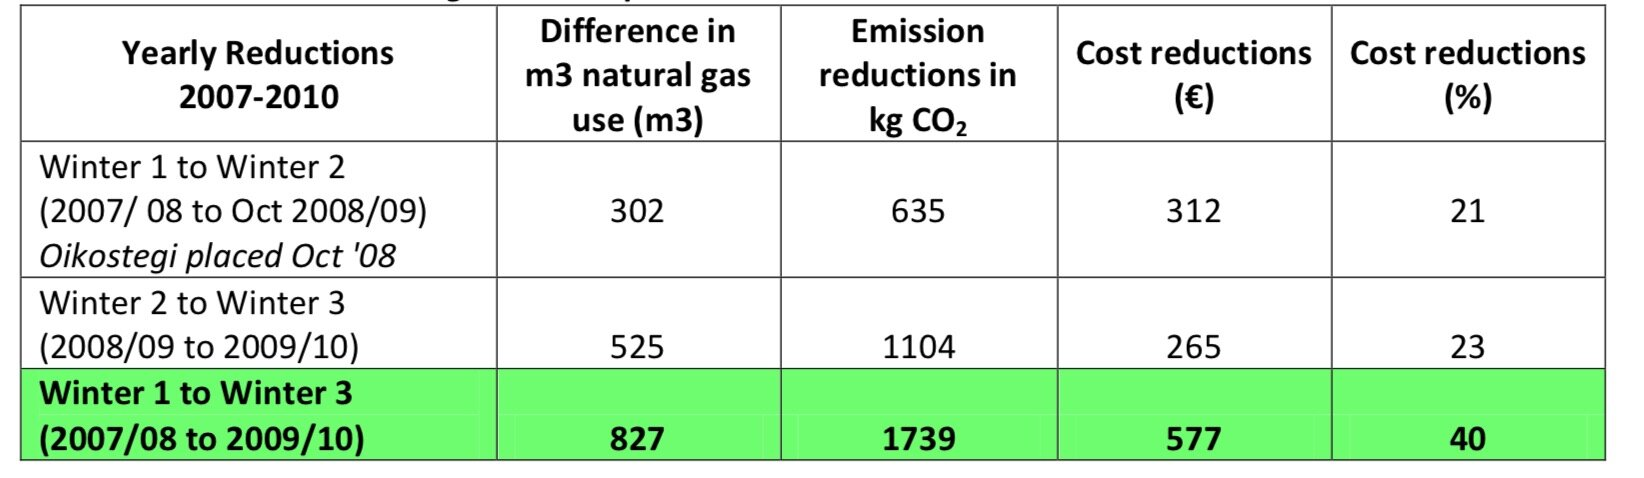 Table 1: Reduction in natural gas comsumption